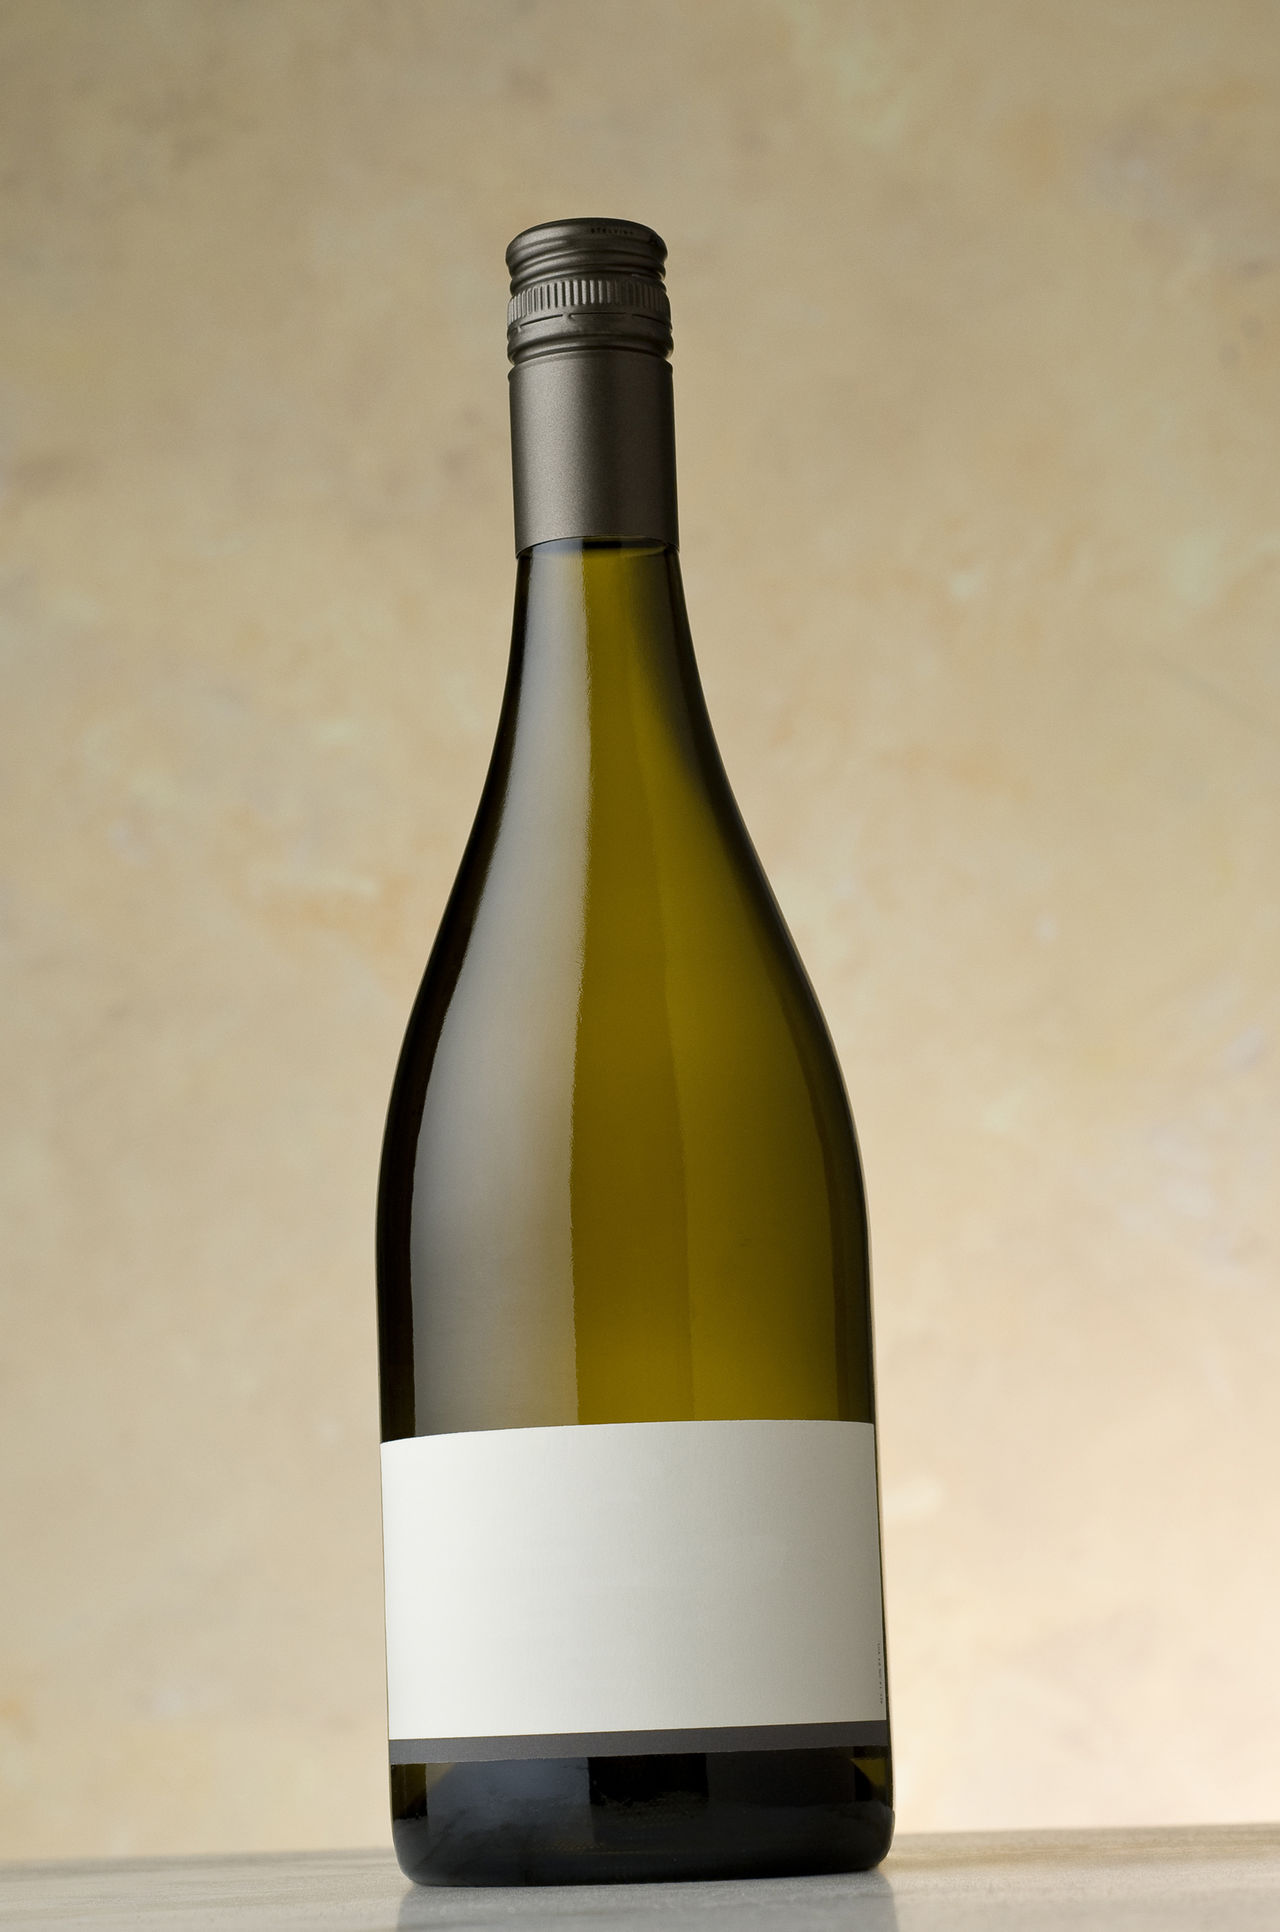 Chardonnay wine, blank label Alcohol Blank Bottle Shot Chardonnay Closed Glass No Label No People No Vintage Product Photography Still Life Studio Shot Vertical Composition White Wine Wine Wine Bottle